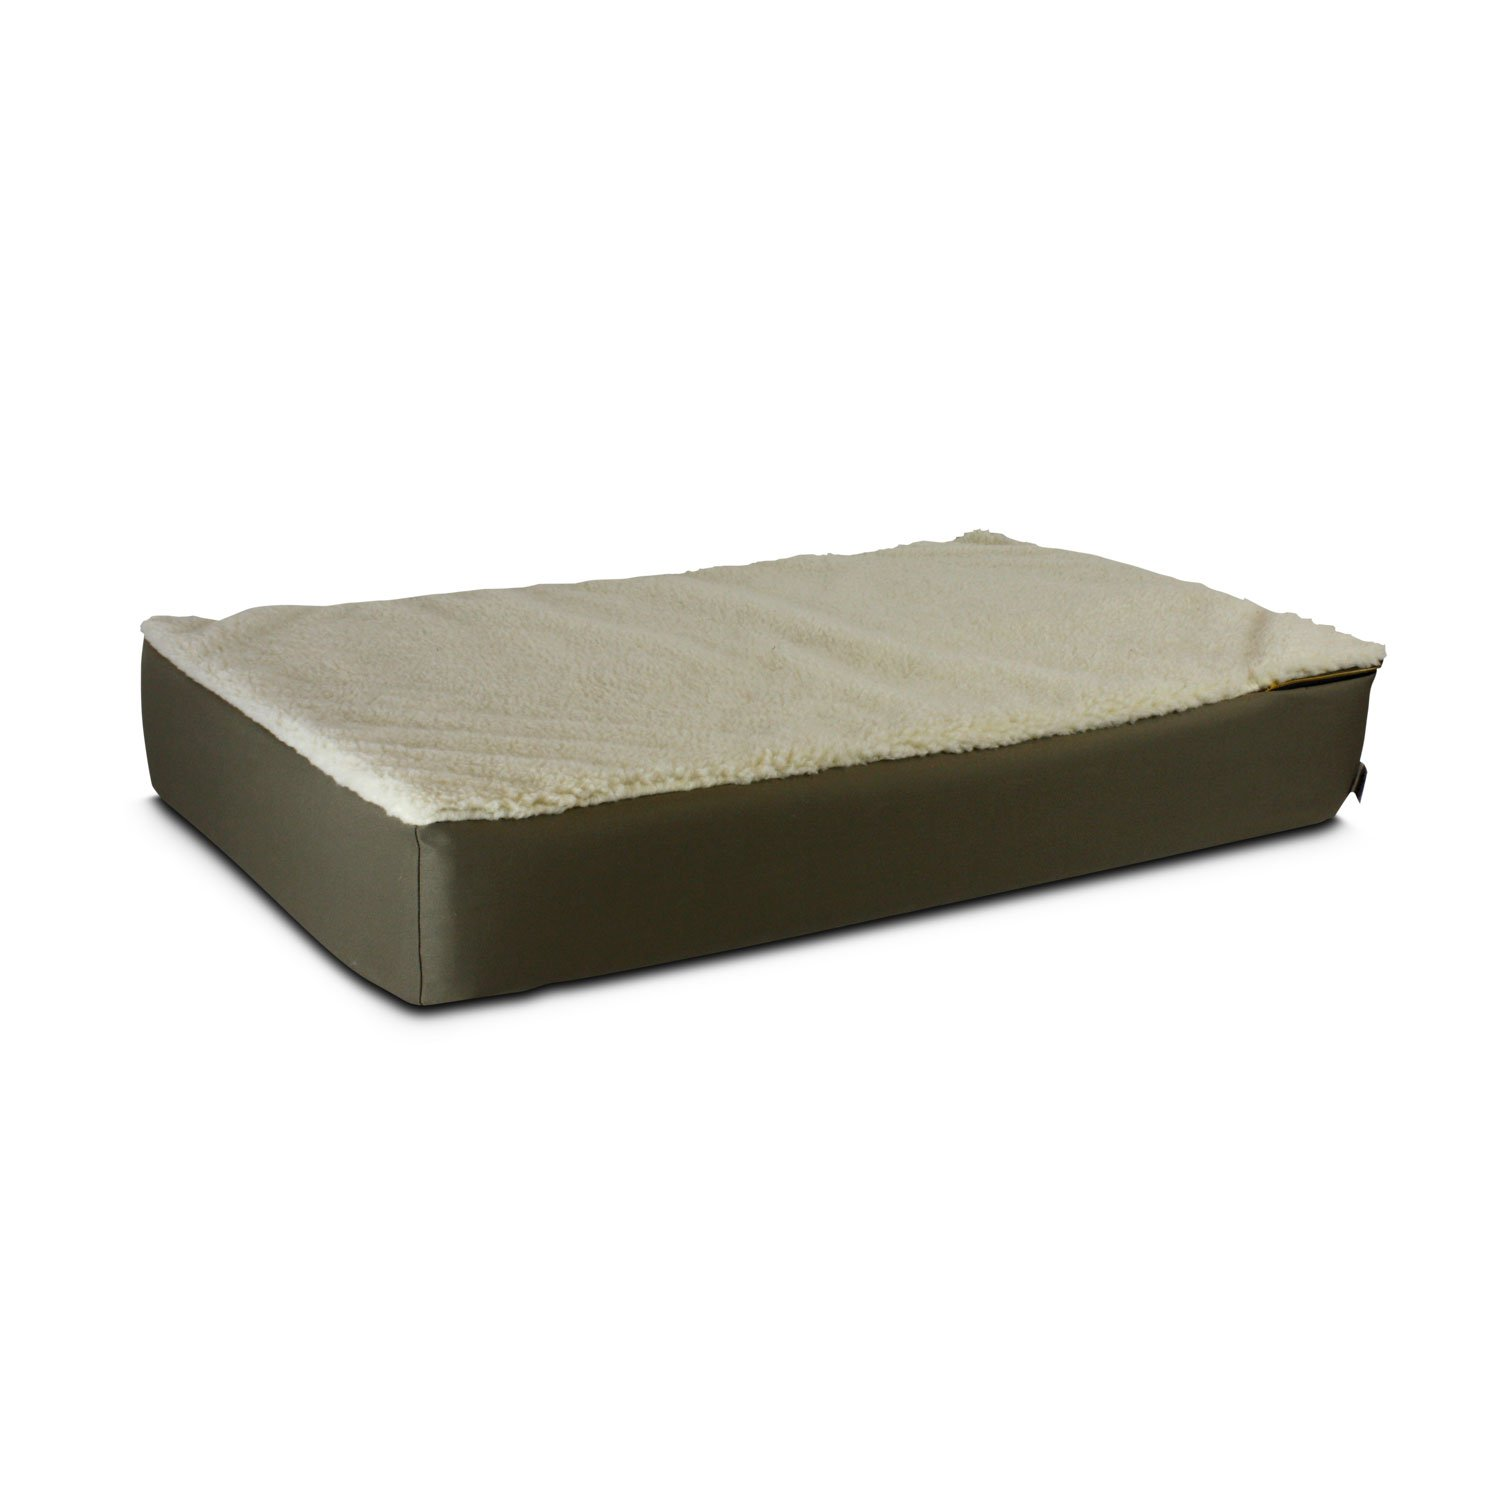 Snoozer Super Orthopedic Lounger in Hazelnut & Cream